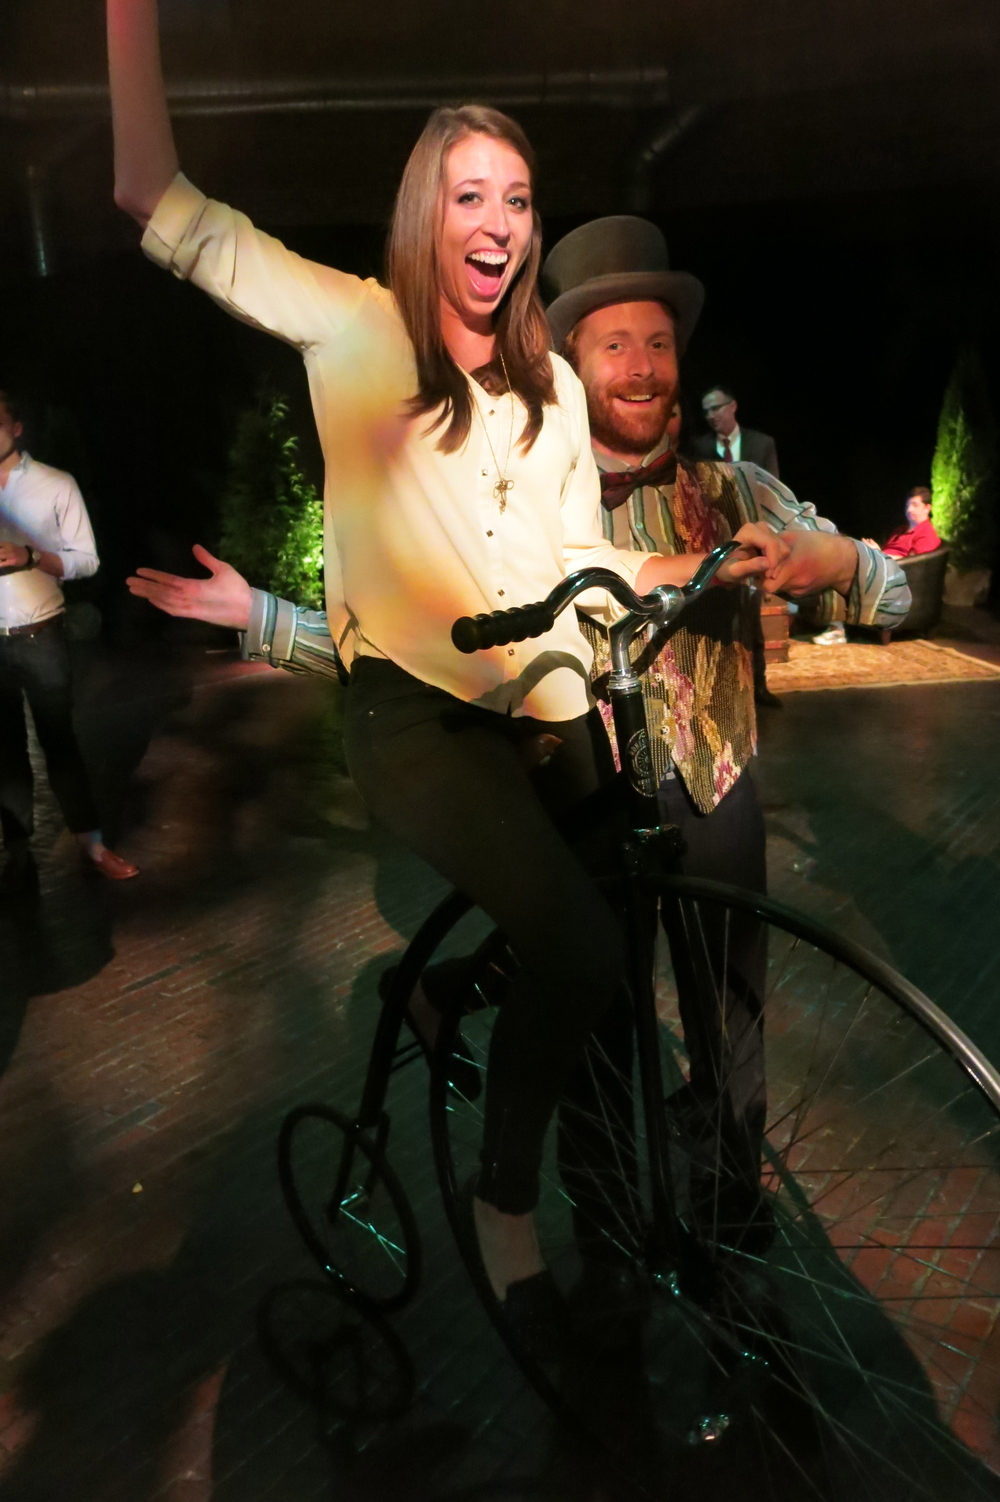 I want to ride my bicycle, I want to ride my bike...